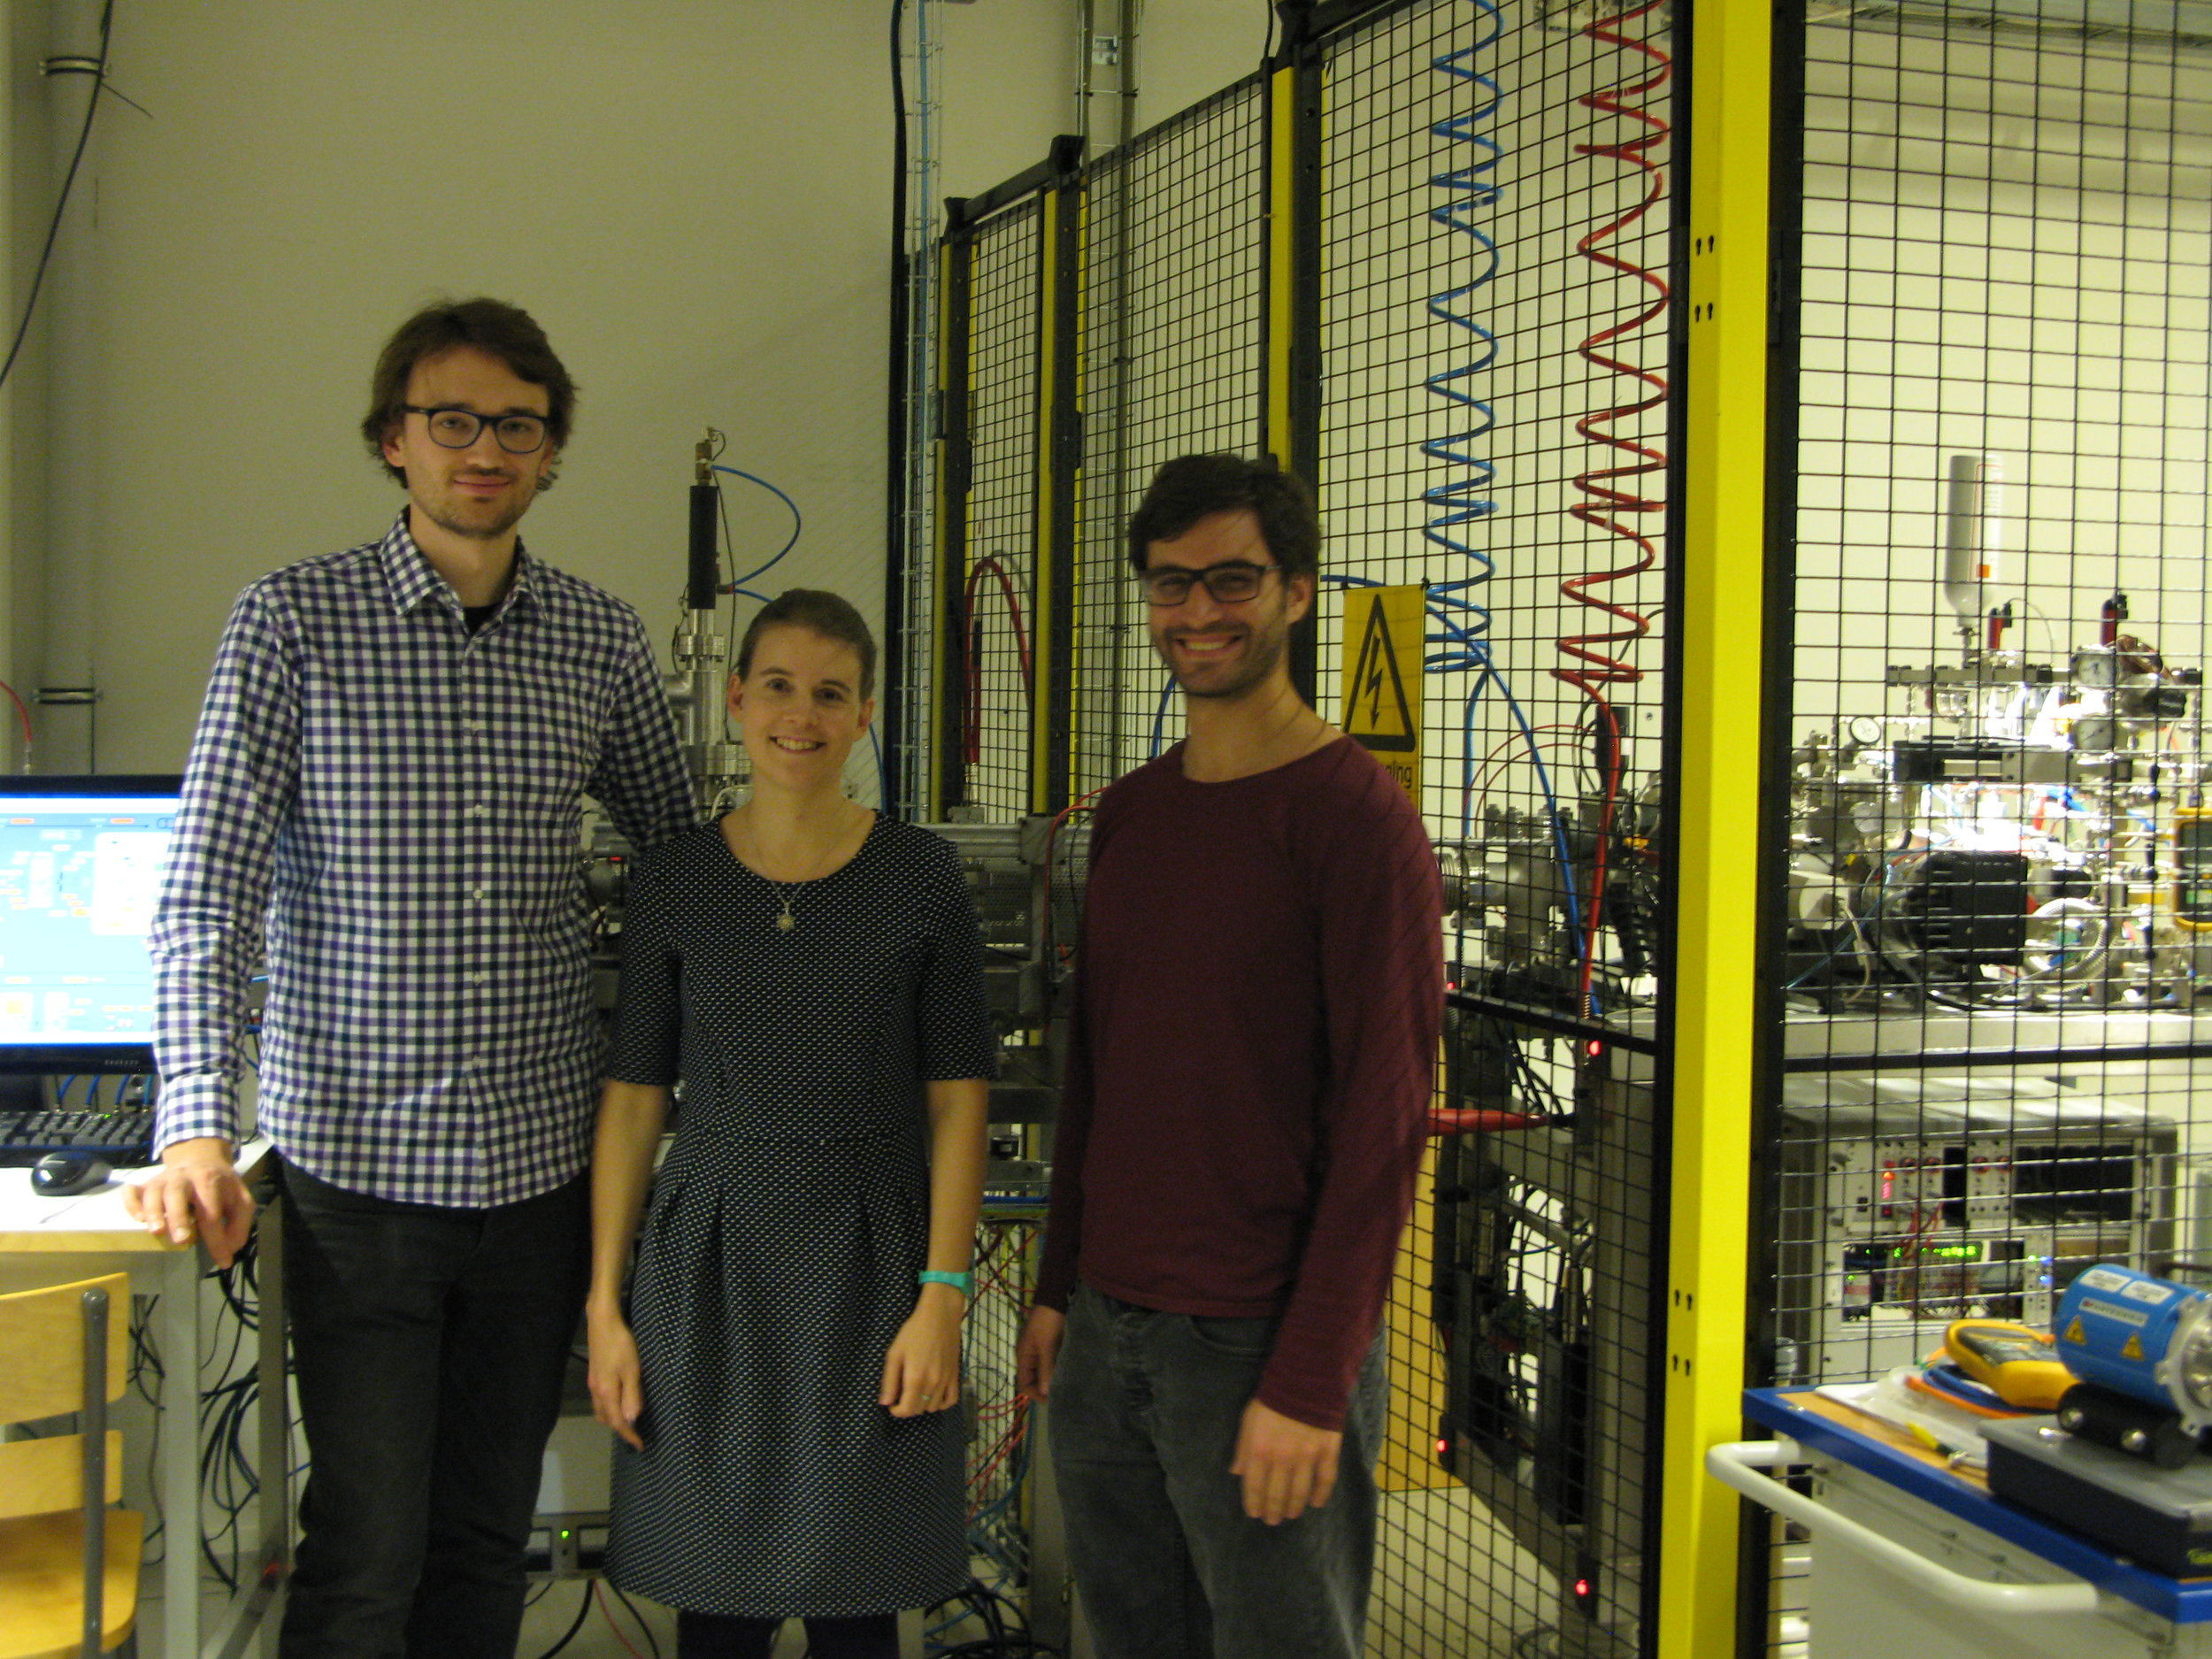 Michael Gatchell, Linnea Lundberg, and Simon Albertini in front of the high-energy ion source platform used to produce C60+ for their experiments.